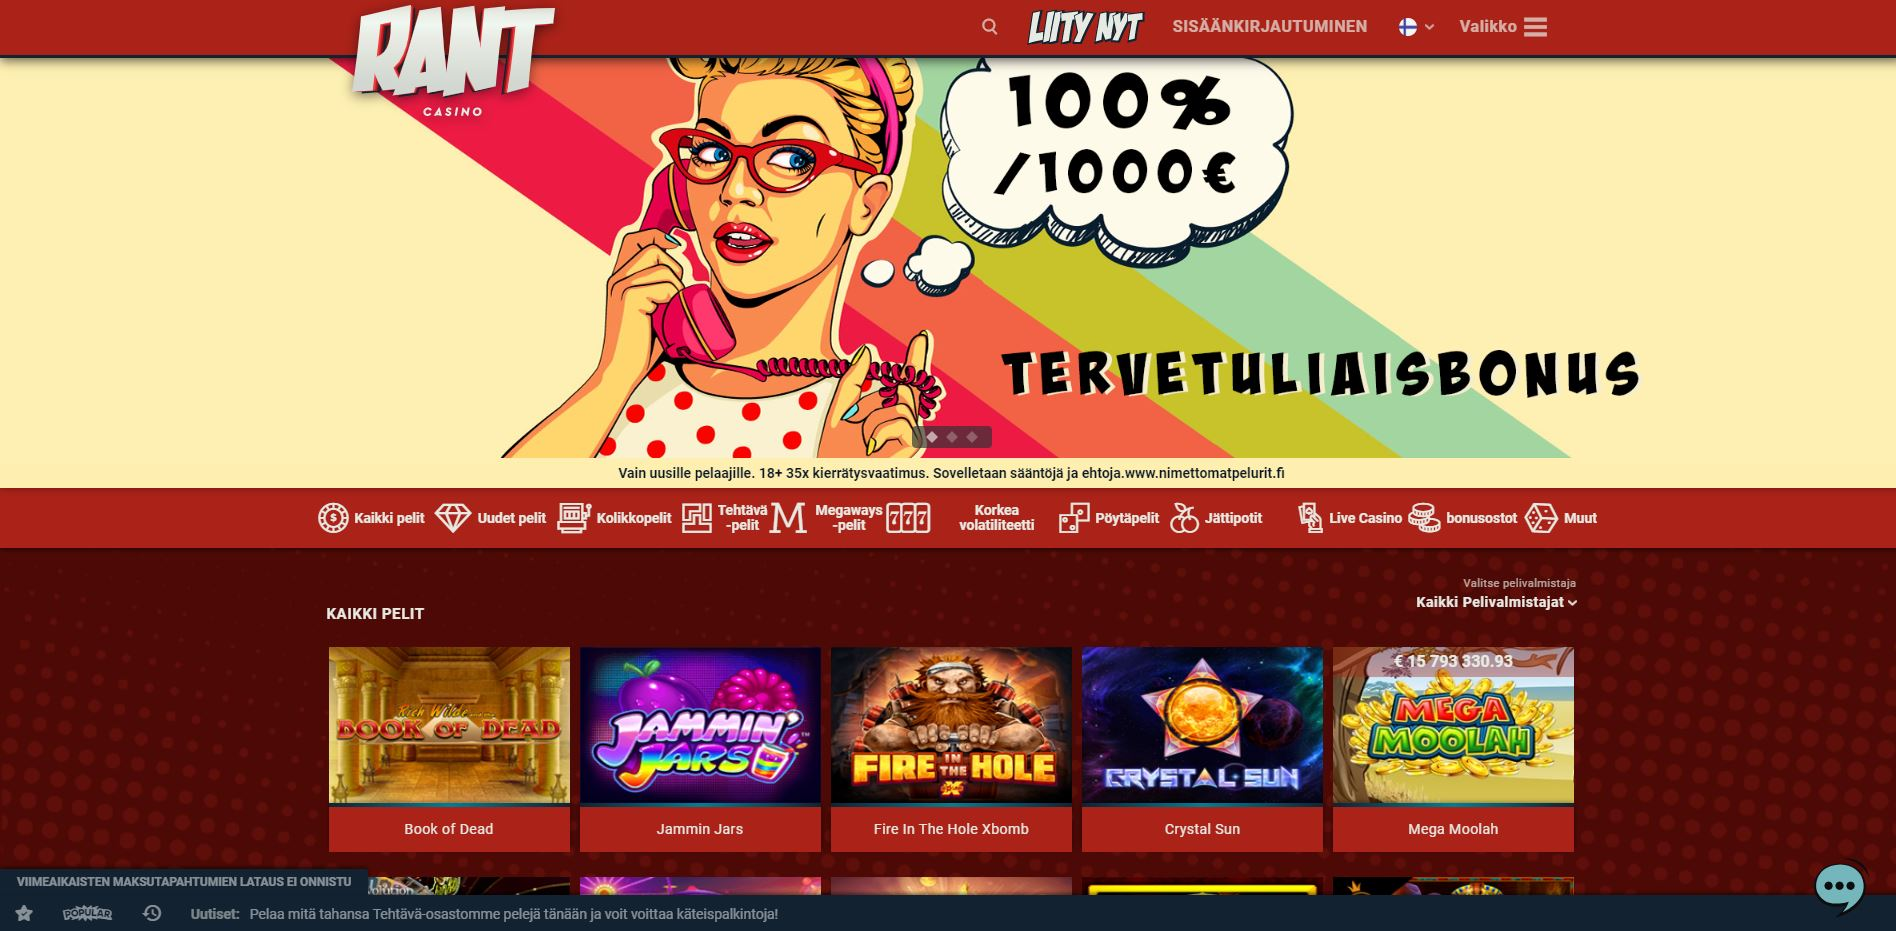 Rant casino finnish home page